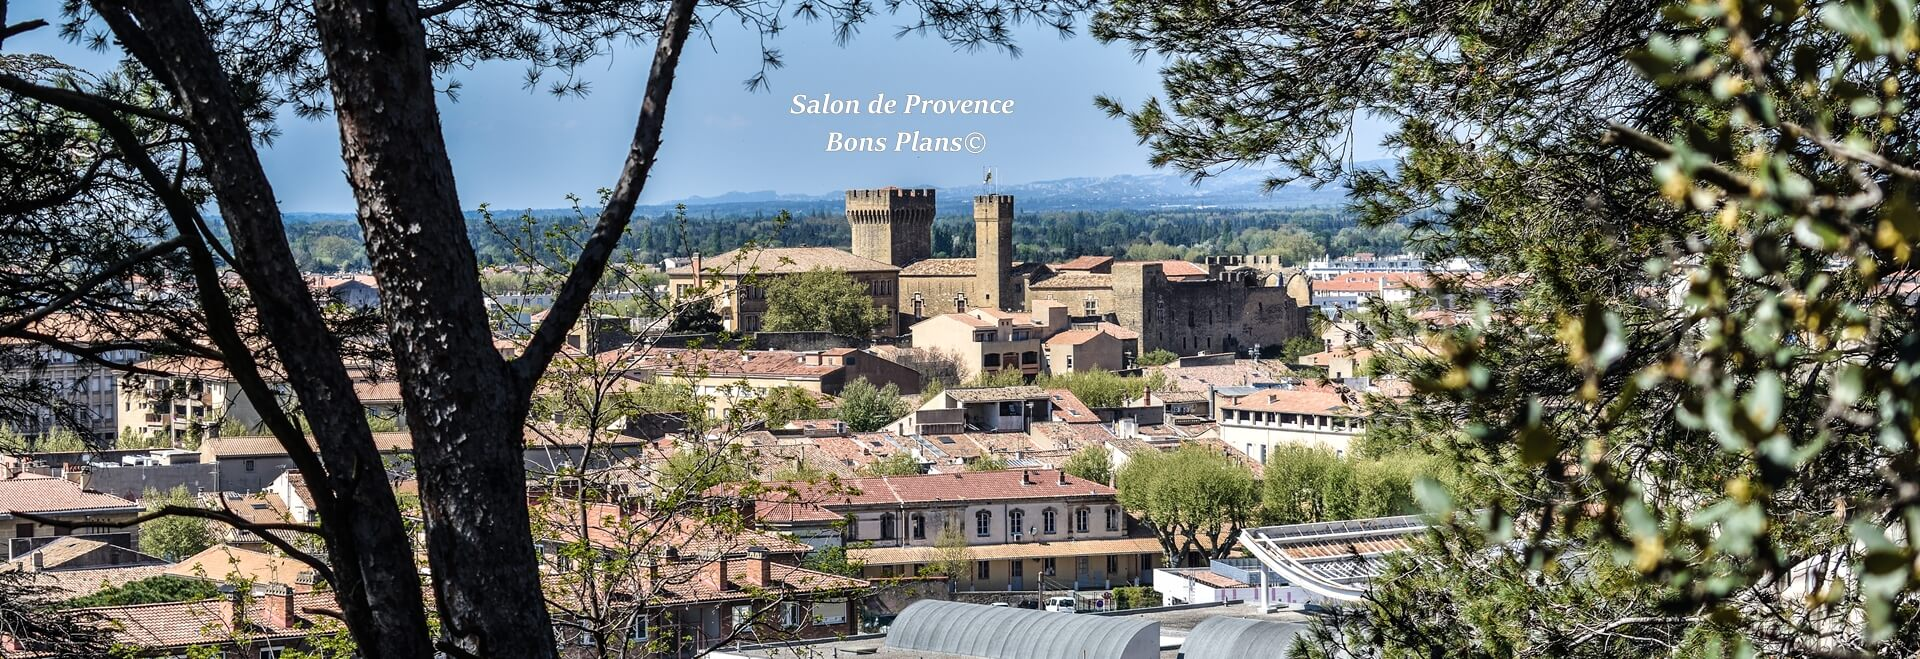 salon de provence bons plans